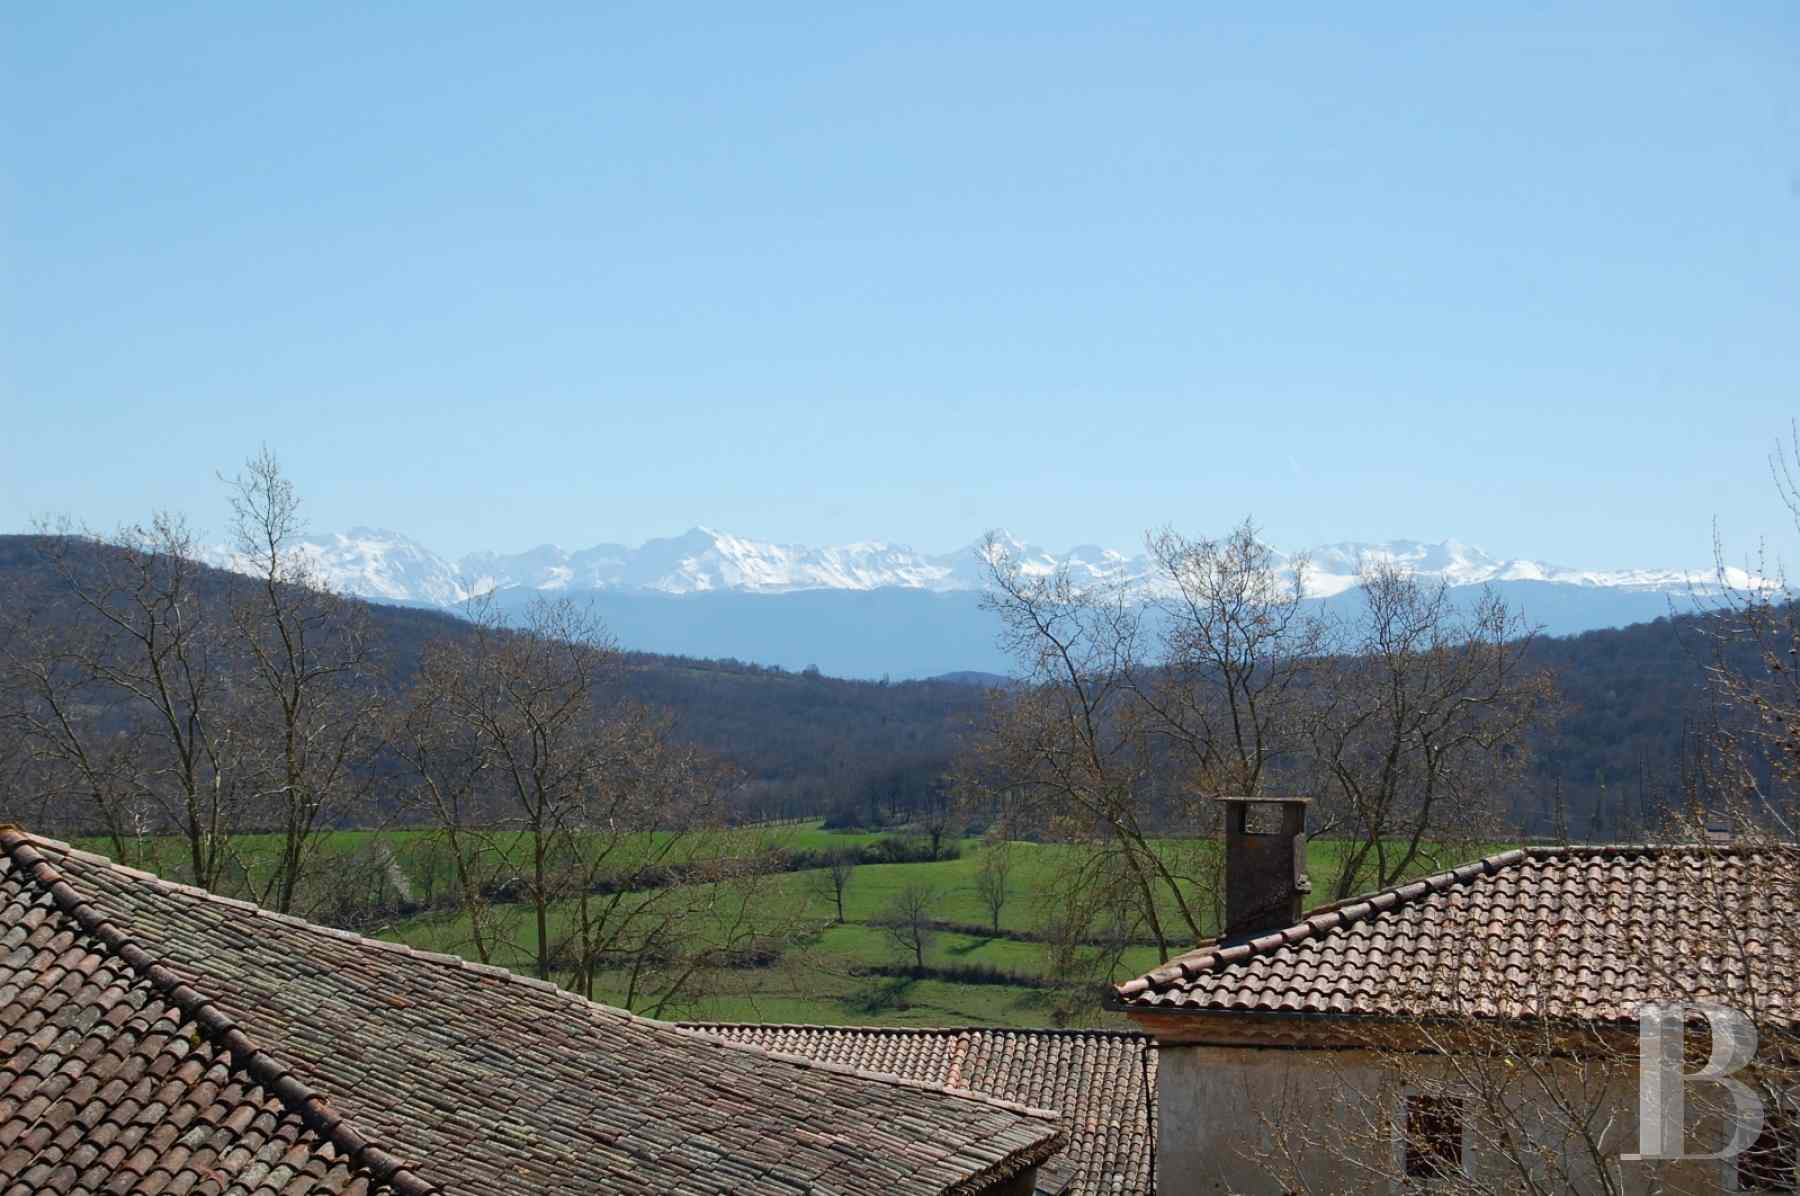 property for sale France midi pyrenees property prenean - 16 zoom